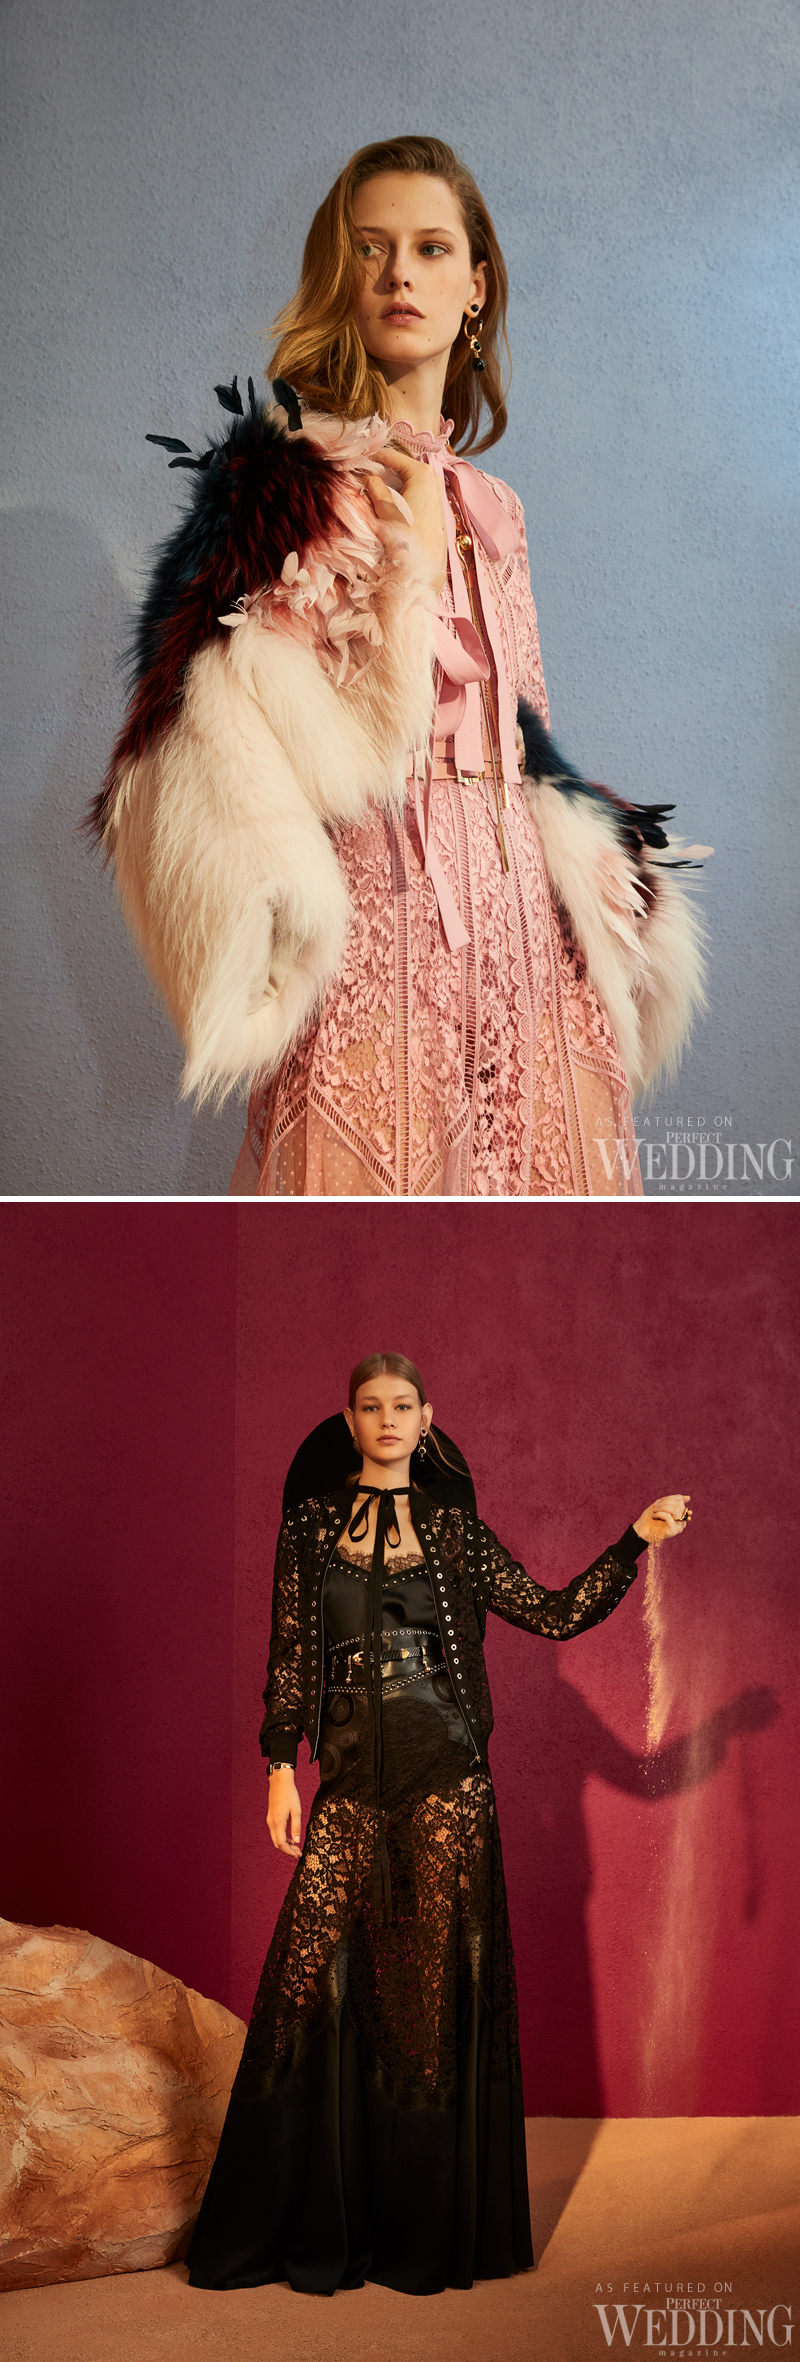 Wedding Magazine, Elie Saab, Elie Saab Pre-Fall 2018 Ready to Wear, Westbound Detour, Perfect Wedding Magazine, Perfect Wedding Blog, Elie Saab Shoes, Elie Saab Clutch,